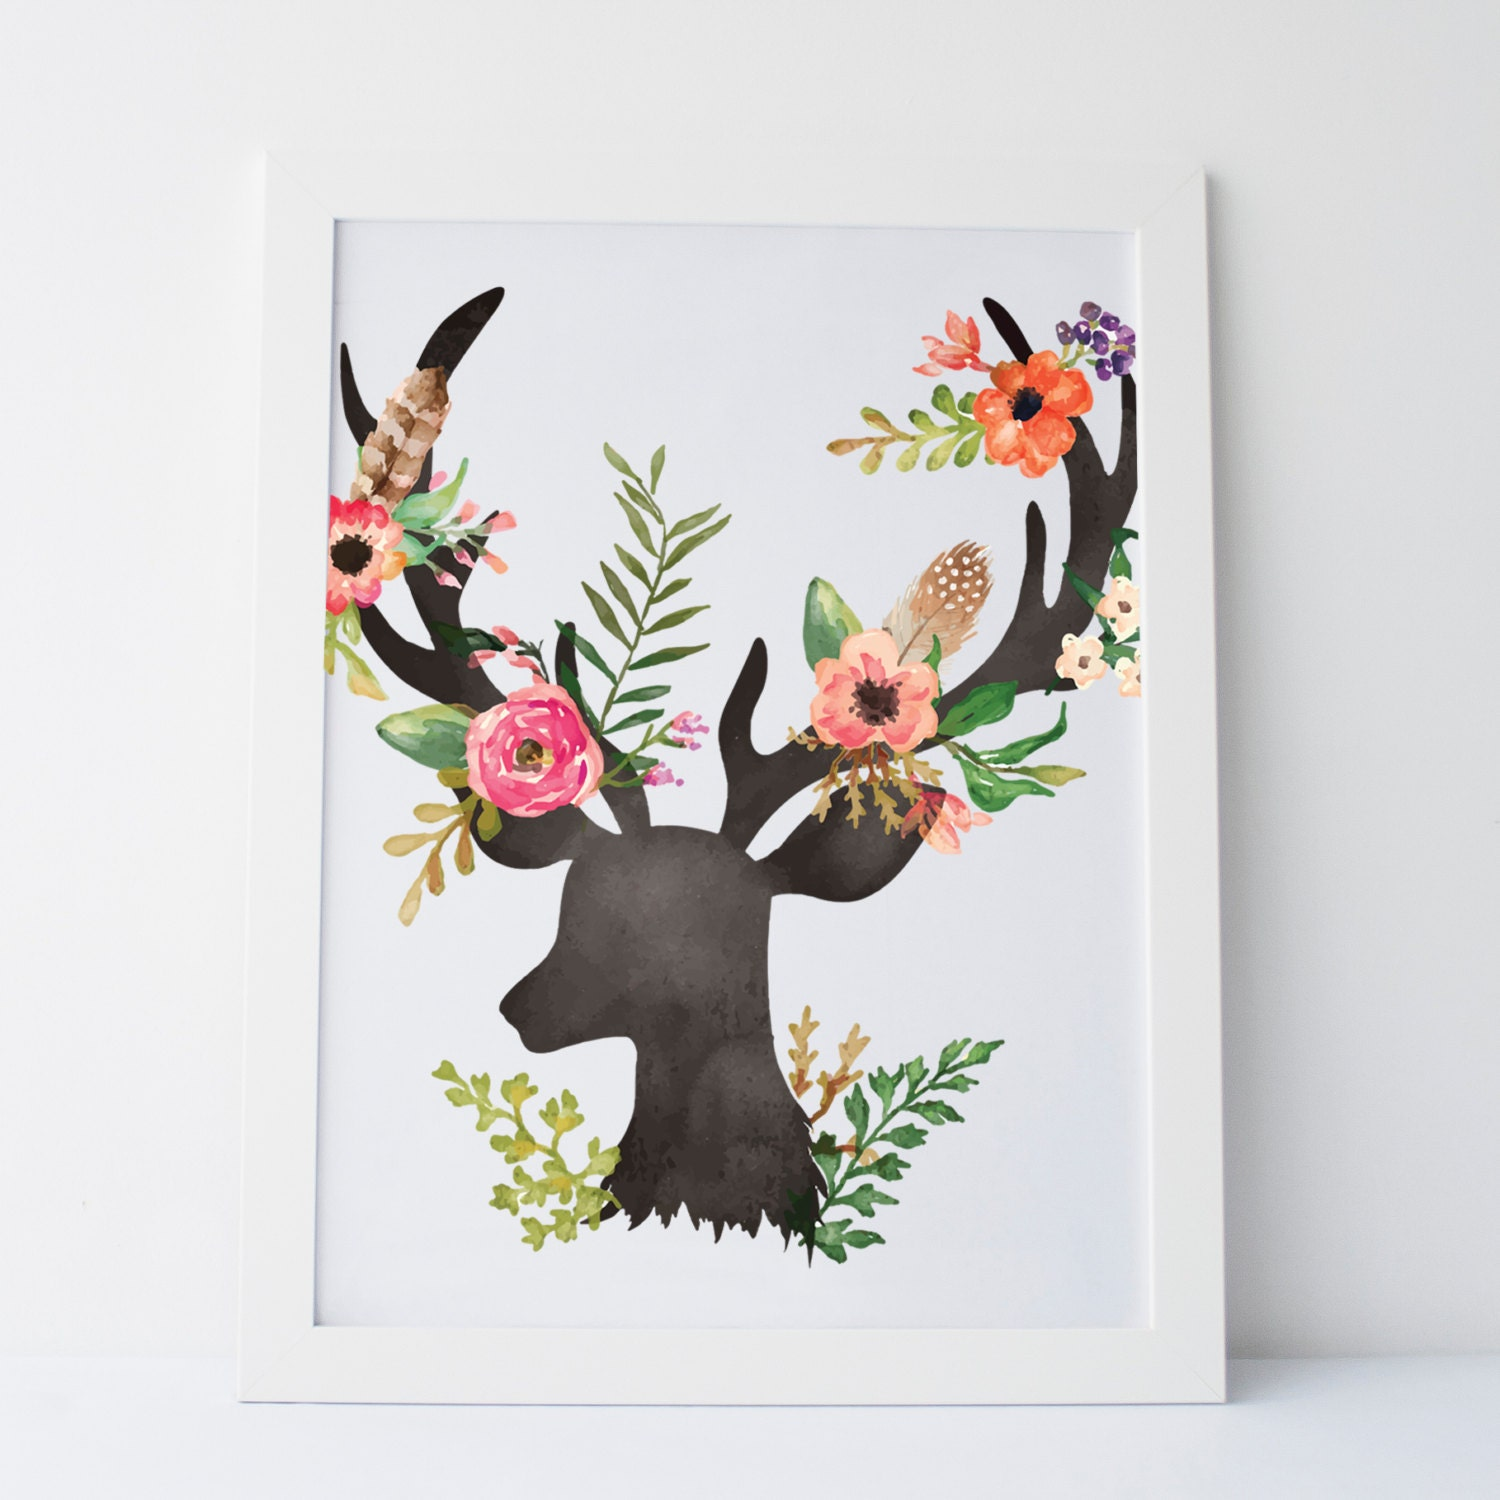 Prints For Wall Decor : Printable art floral deer wall print gallery